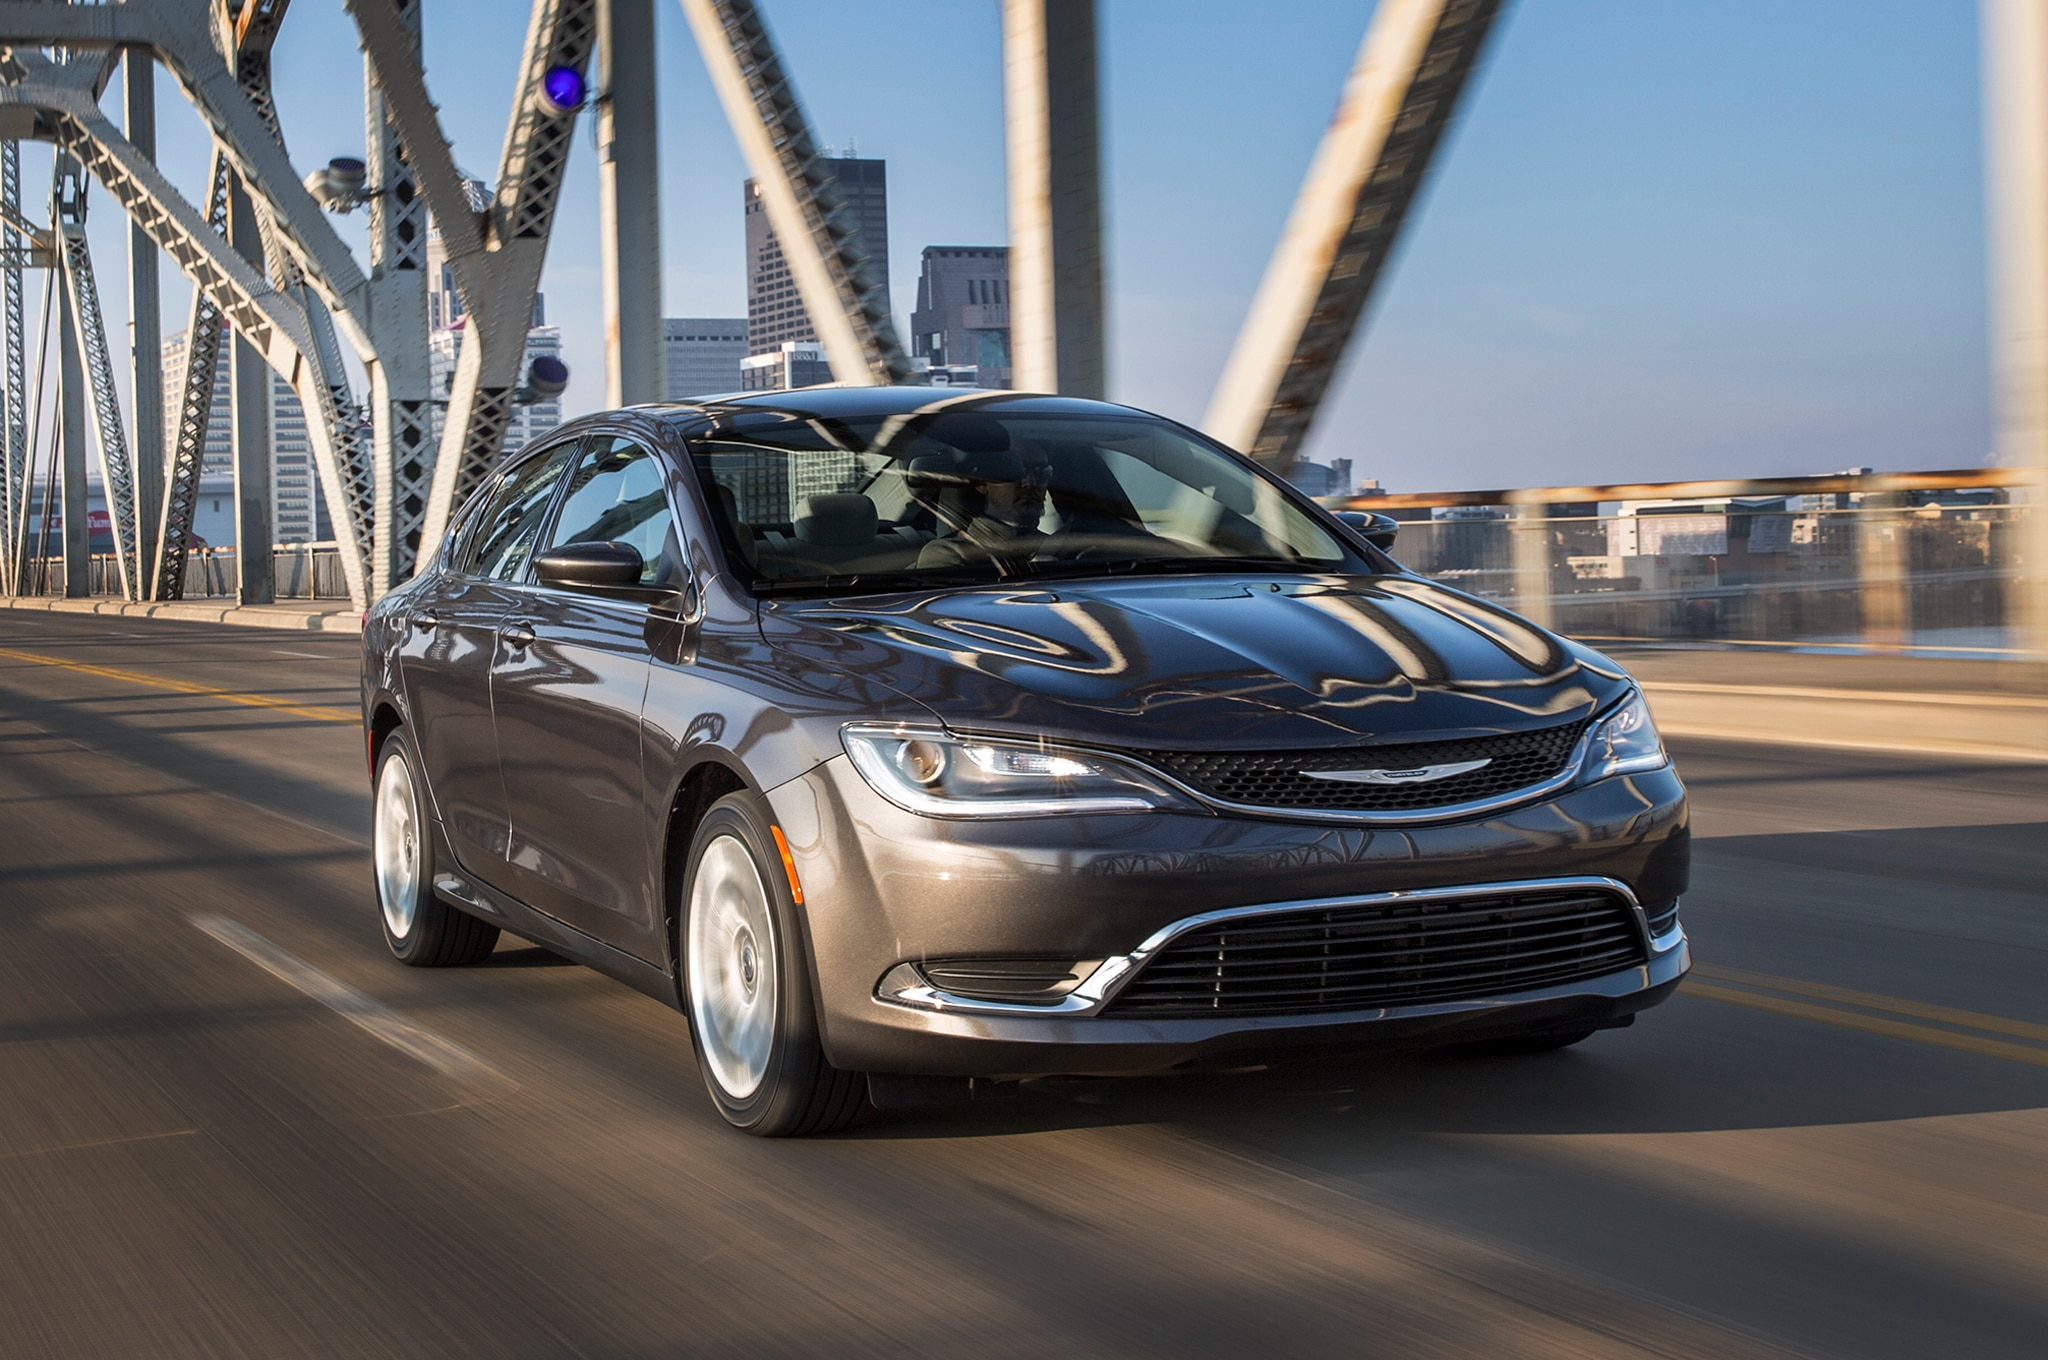 Chrysler 200 Mpg >> 2016 Chrysler 200C Review